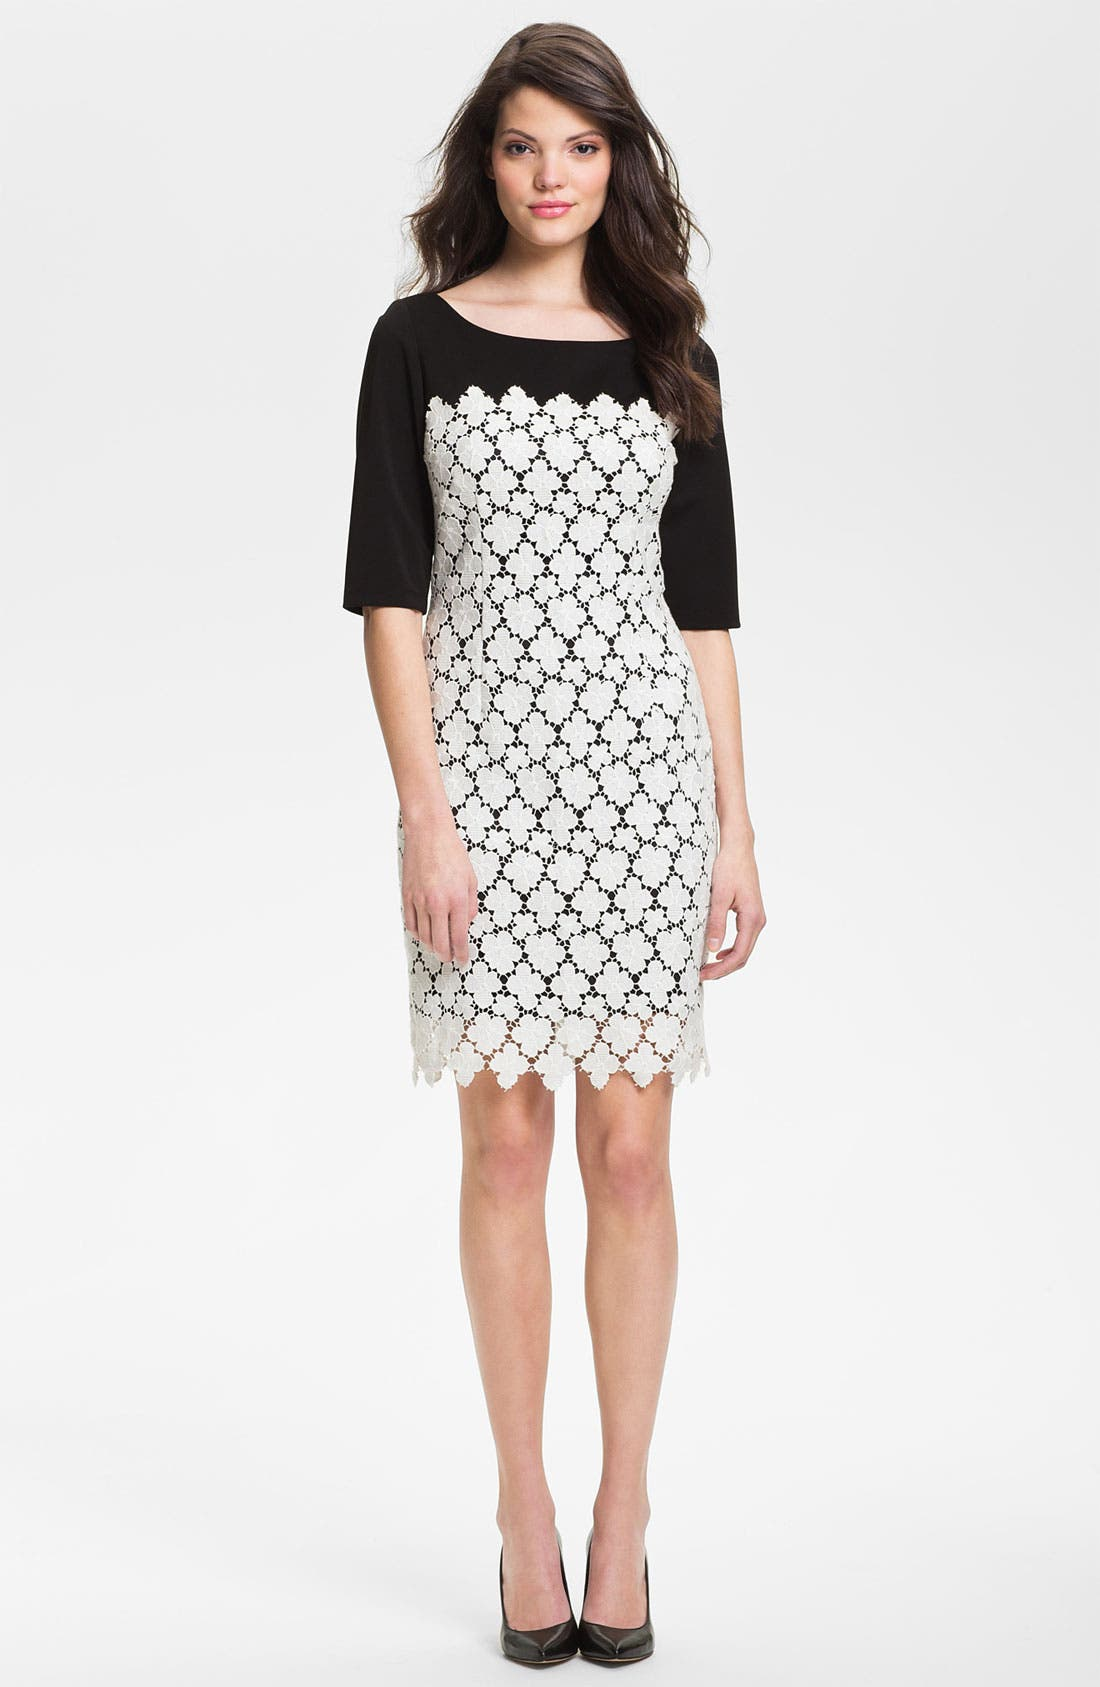 Alternate Image 1 Selected - Suzi Chin for Maggy Boutique Lace Overlay Sheath Dress